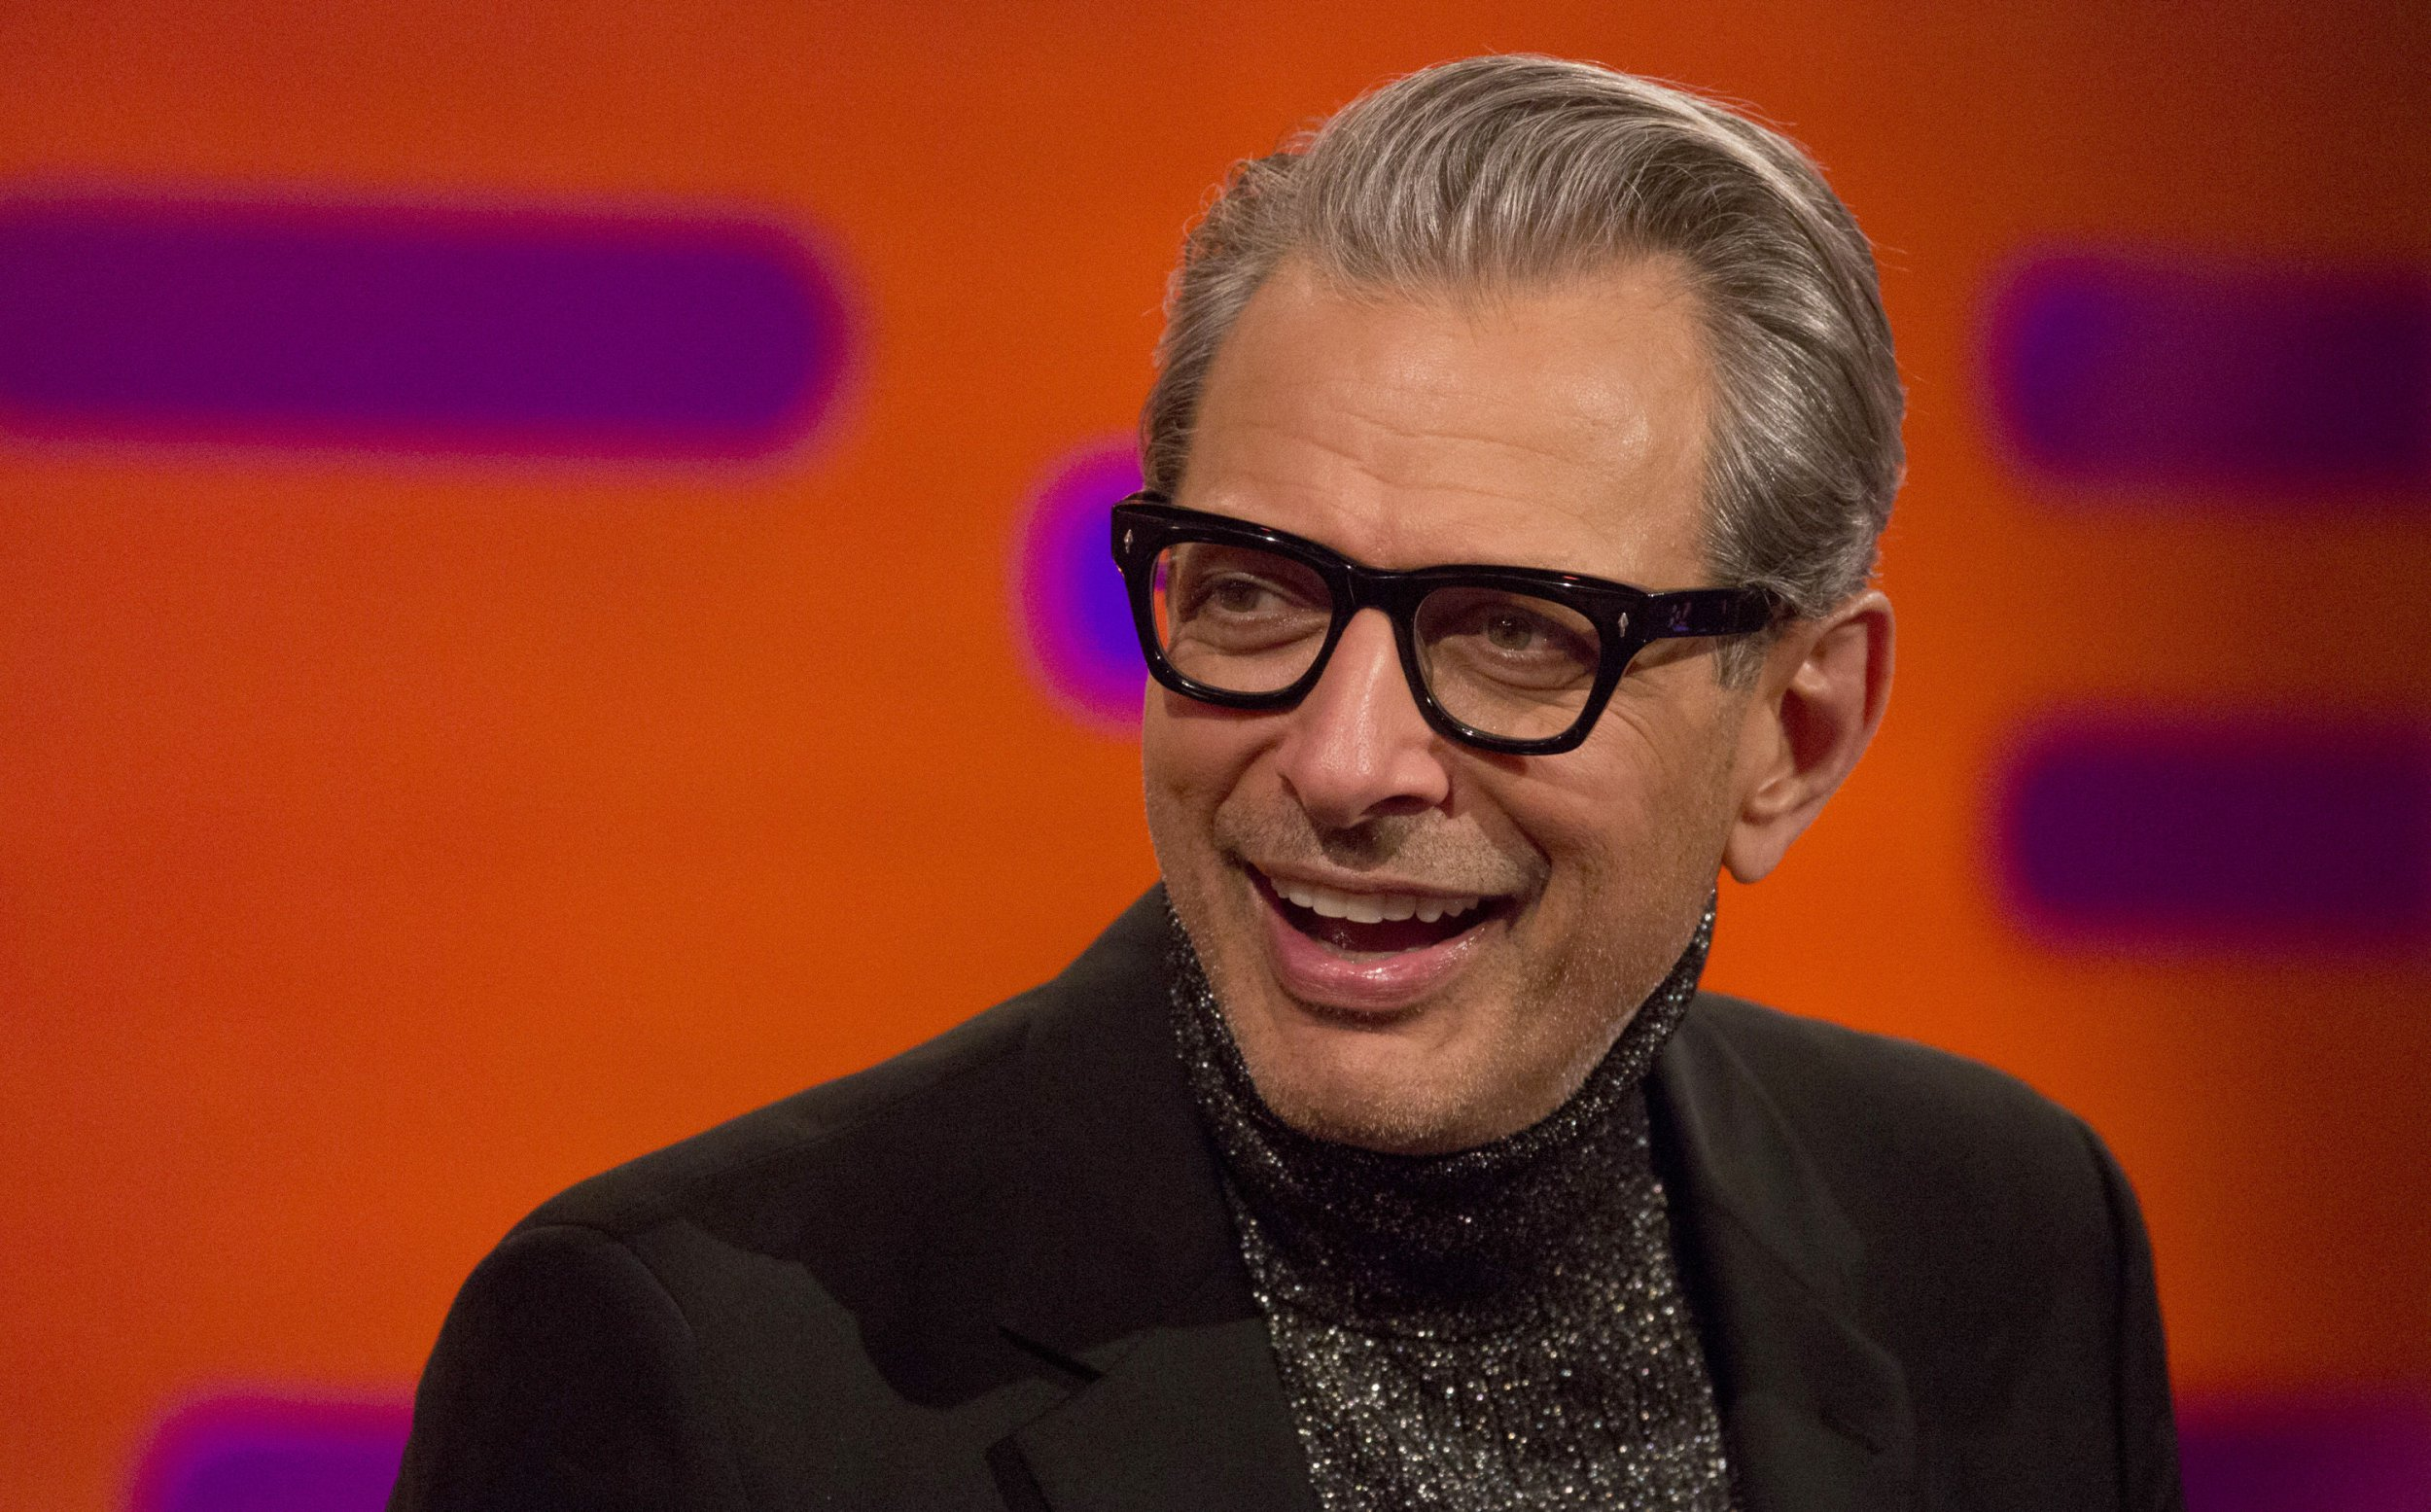 Jeff Goldblum is out Jeff Goldblum-ing himself and releasing his debut album